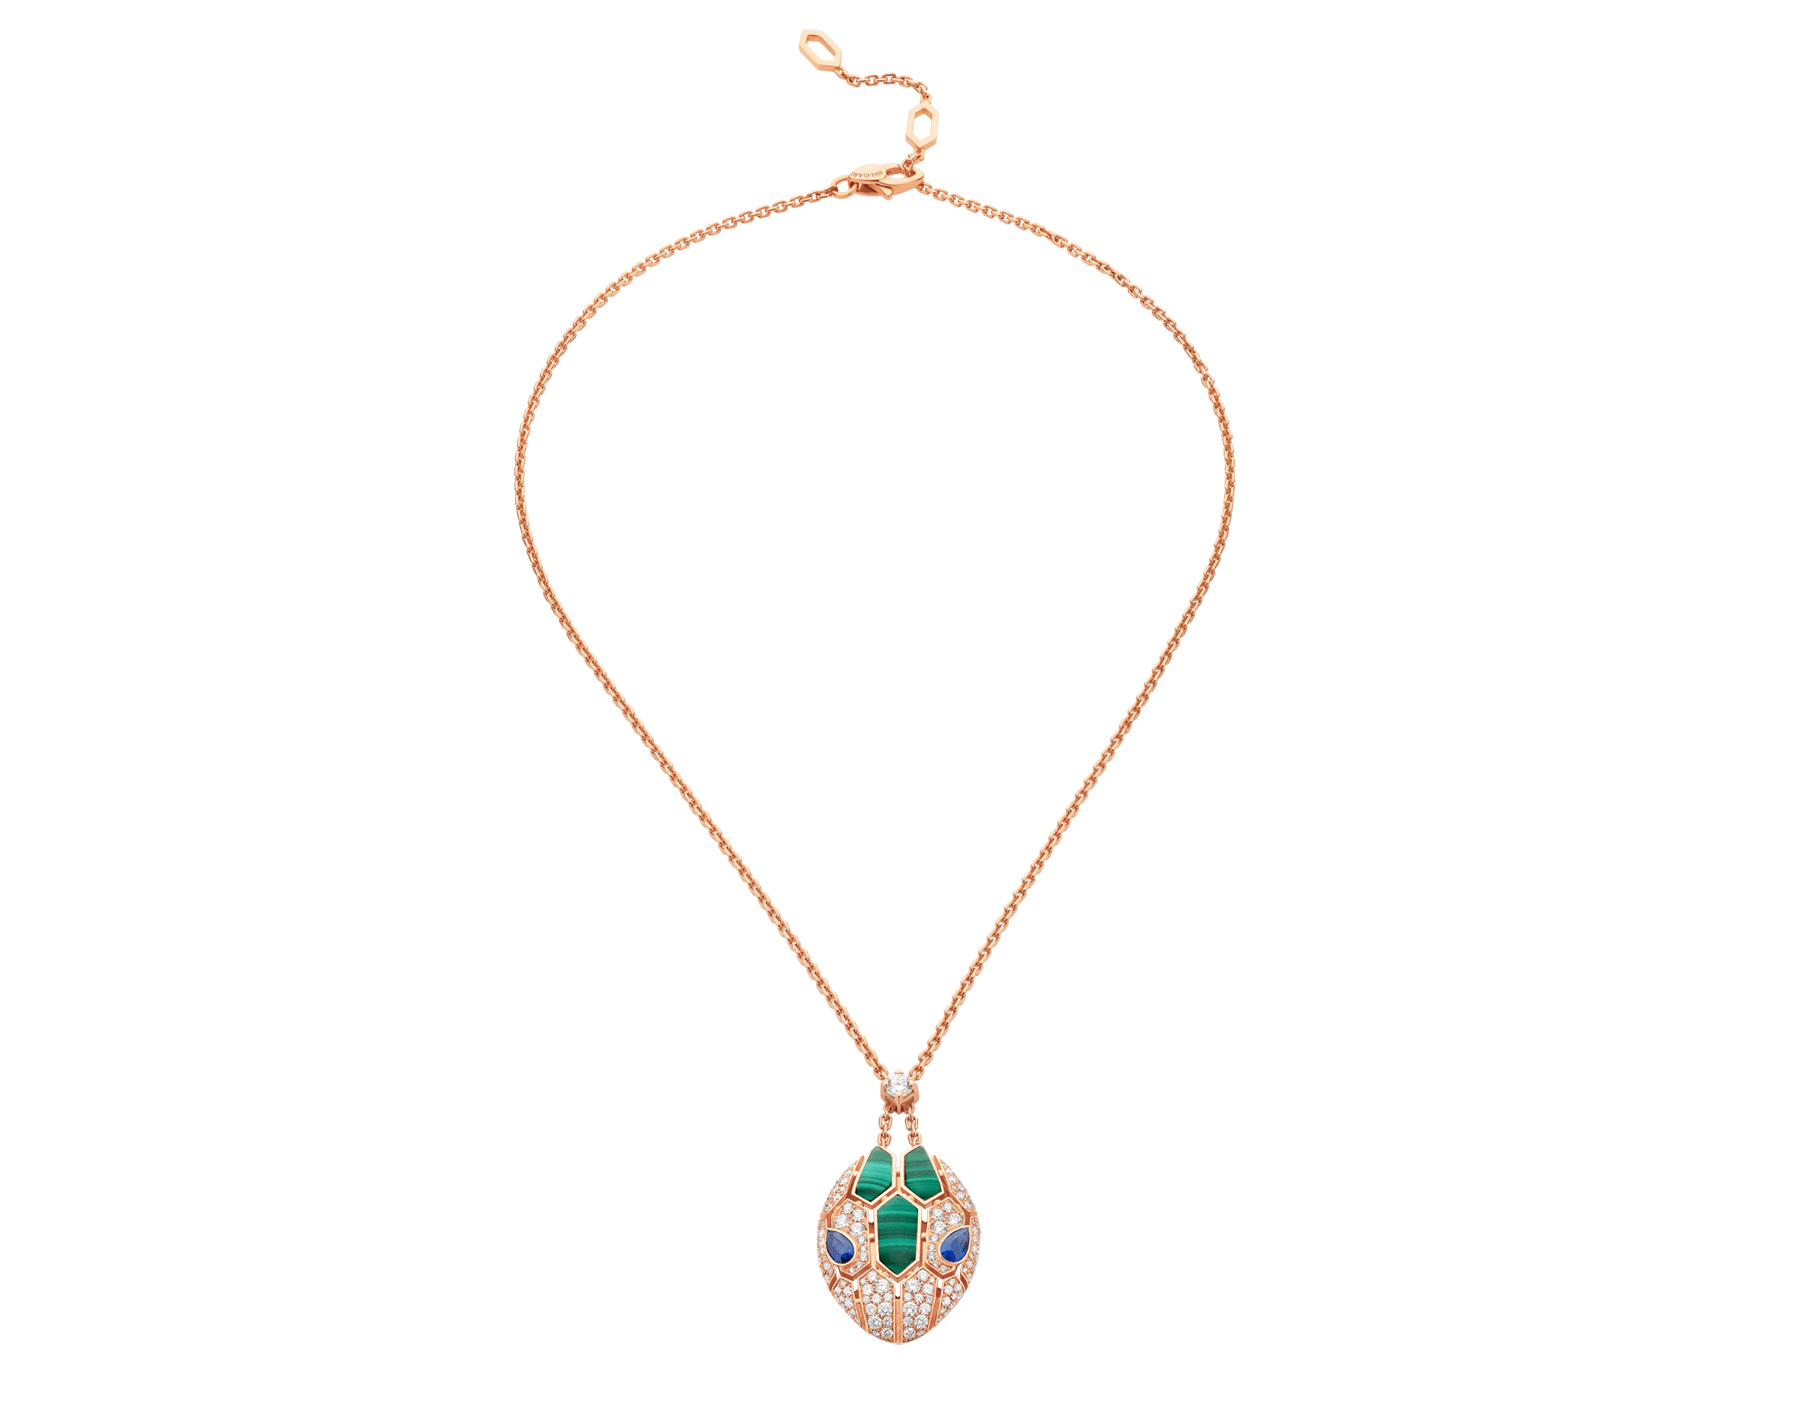 Serpenti 18 kt rose gold necklace set with blue sapphire eyes, malachite elements and pavé diamonds on the pendant. 356782 image 1